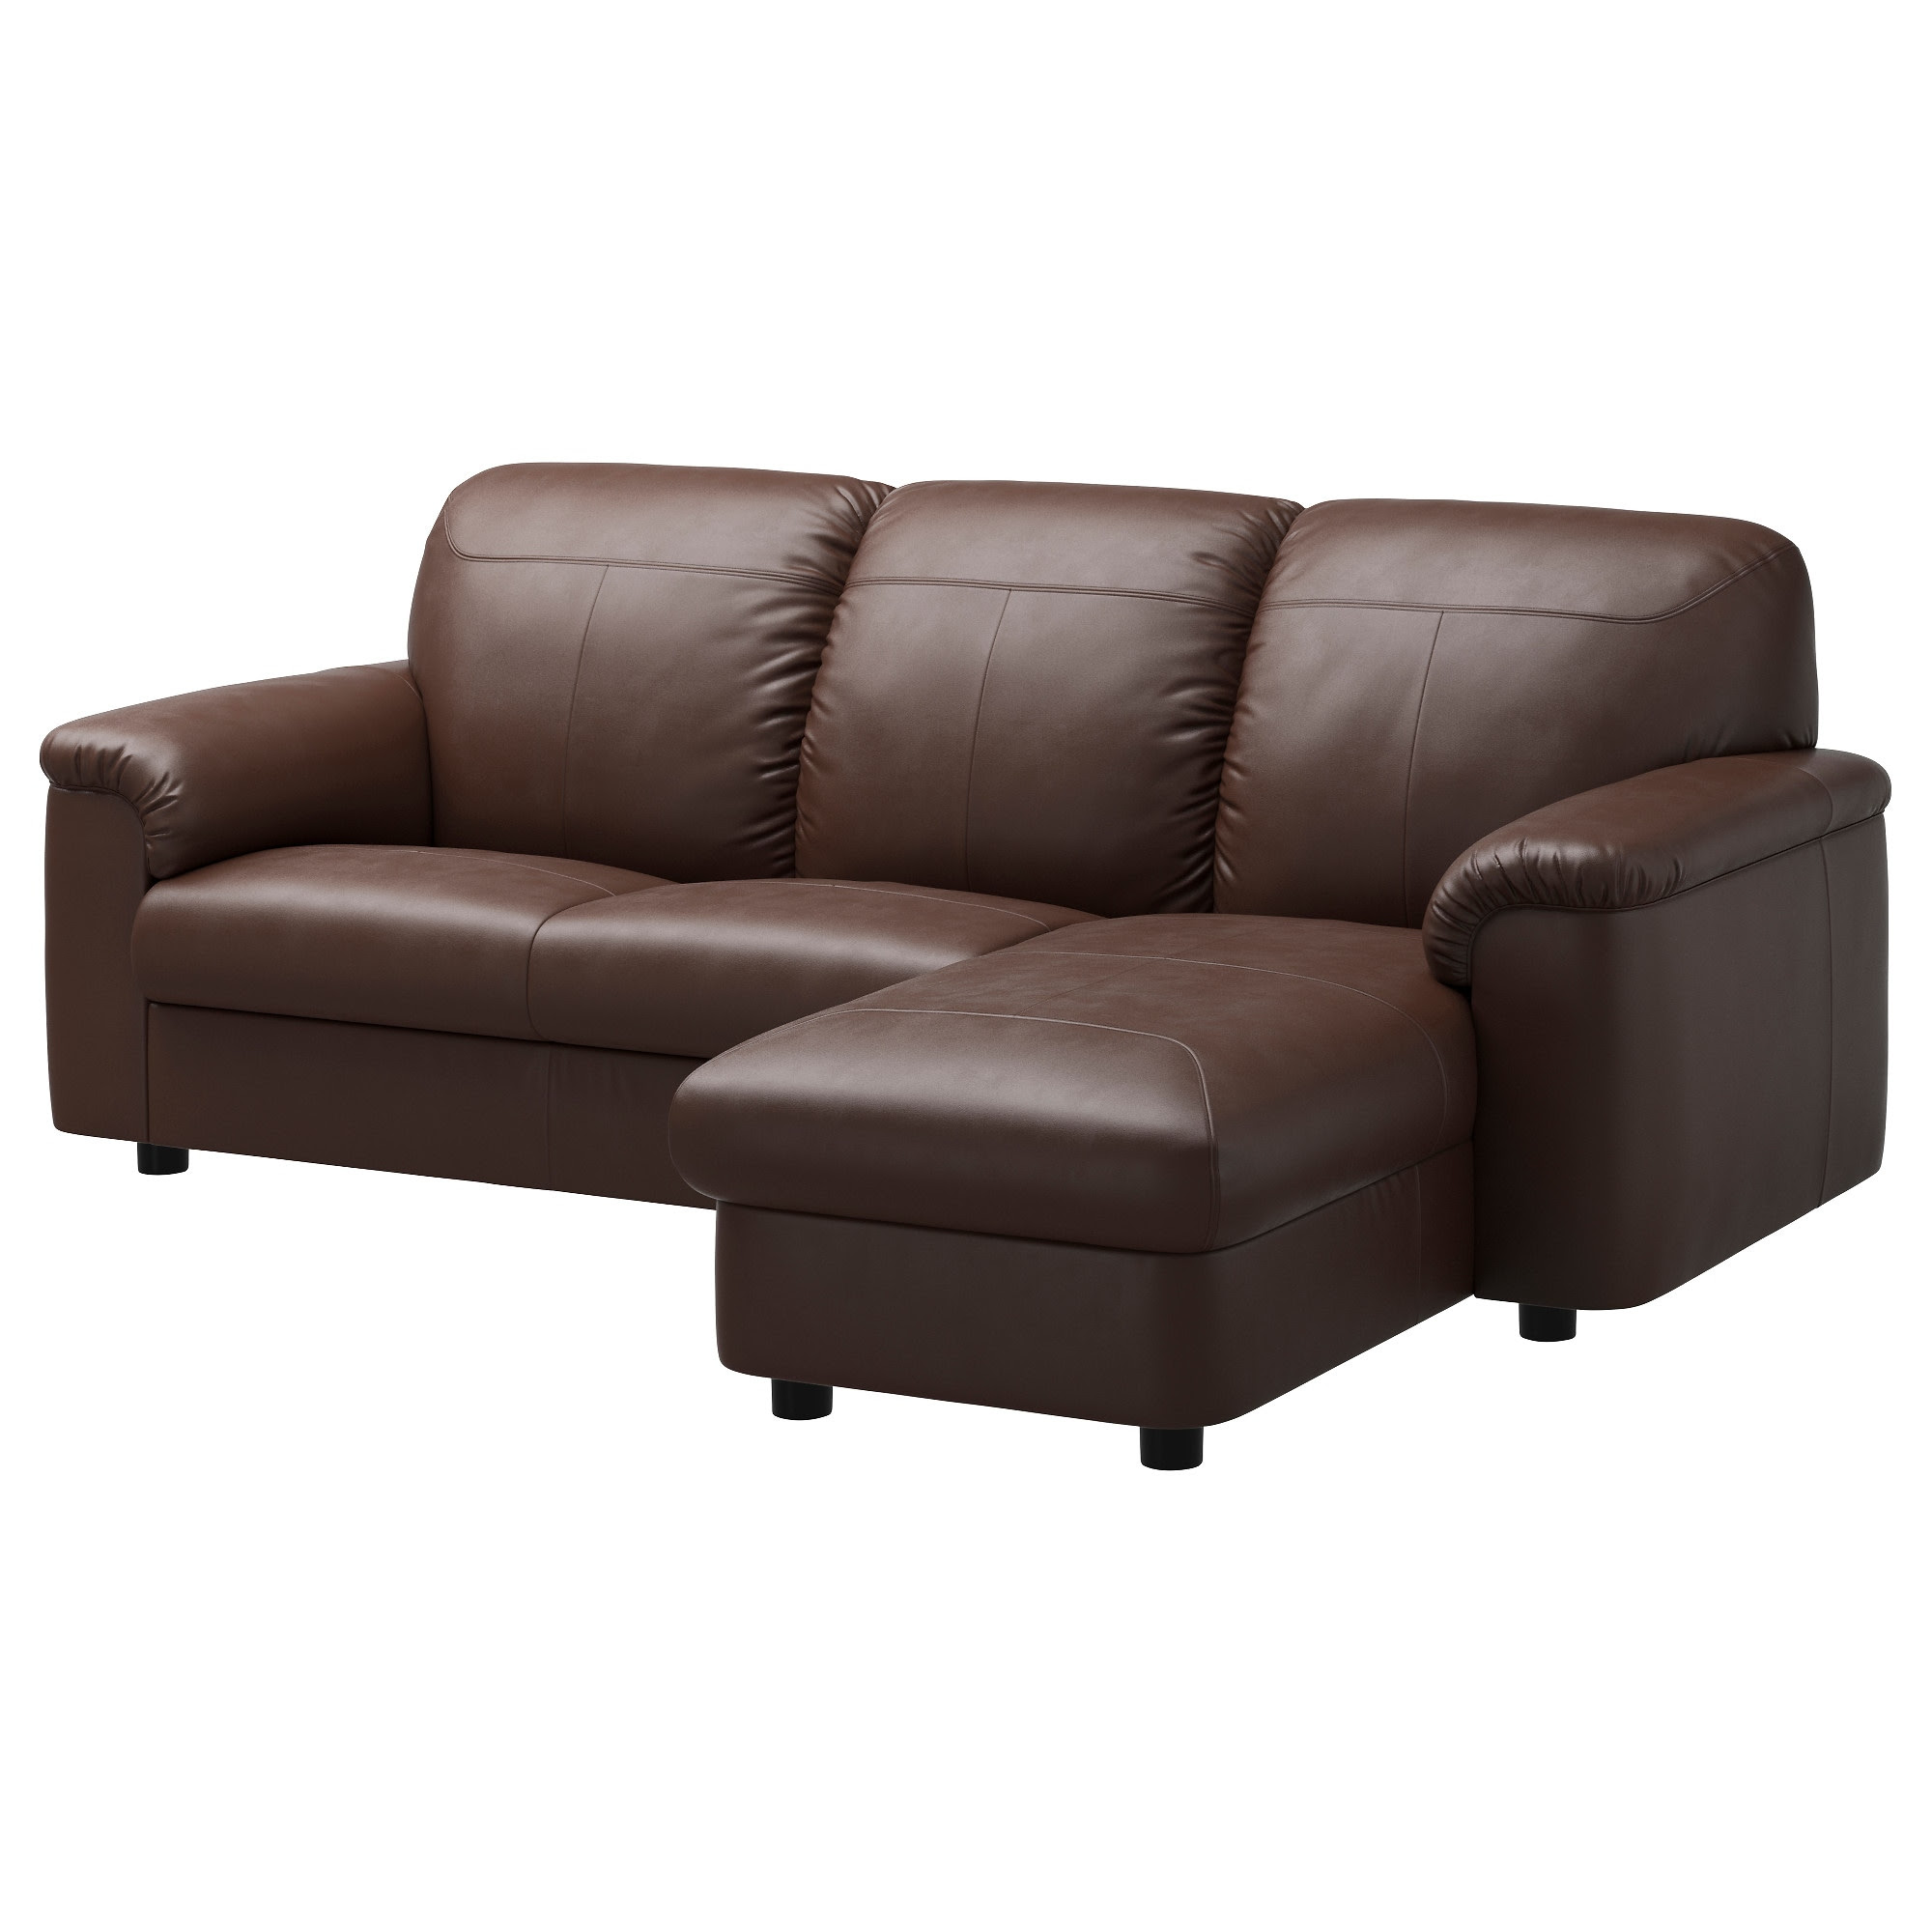 Leather Sofas Ikea